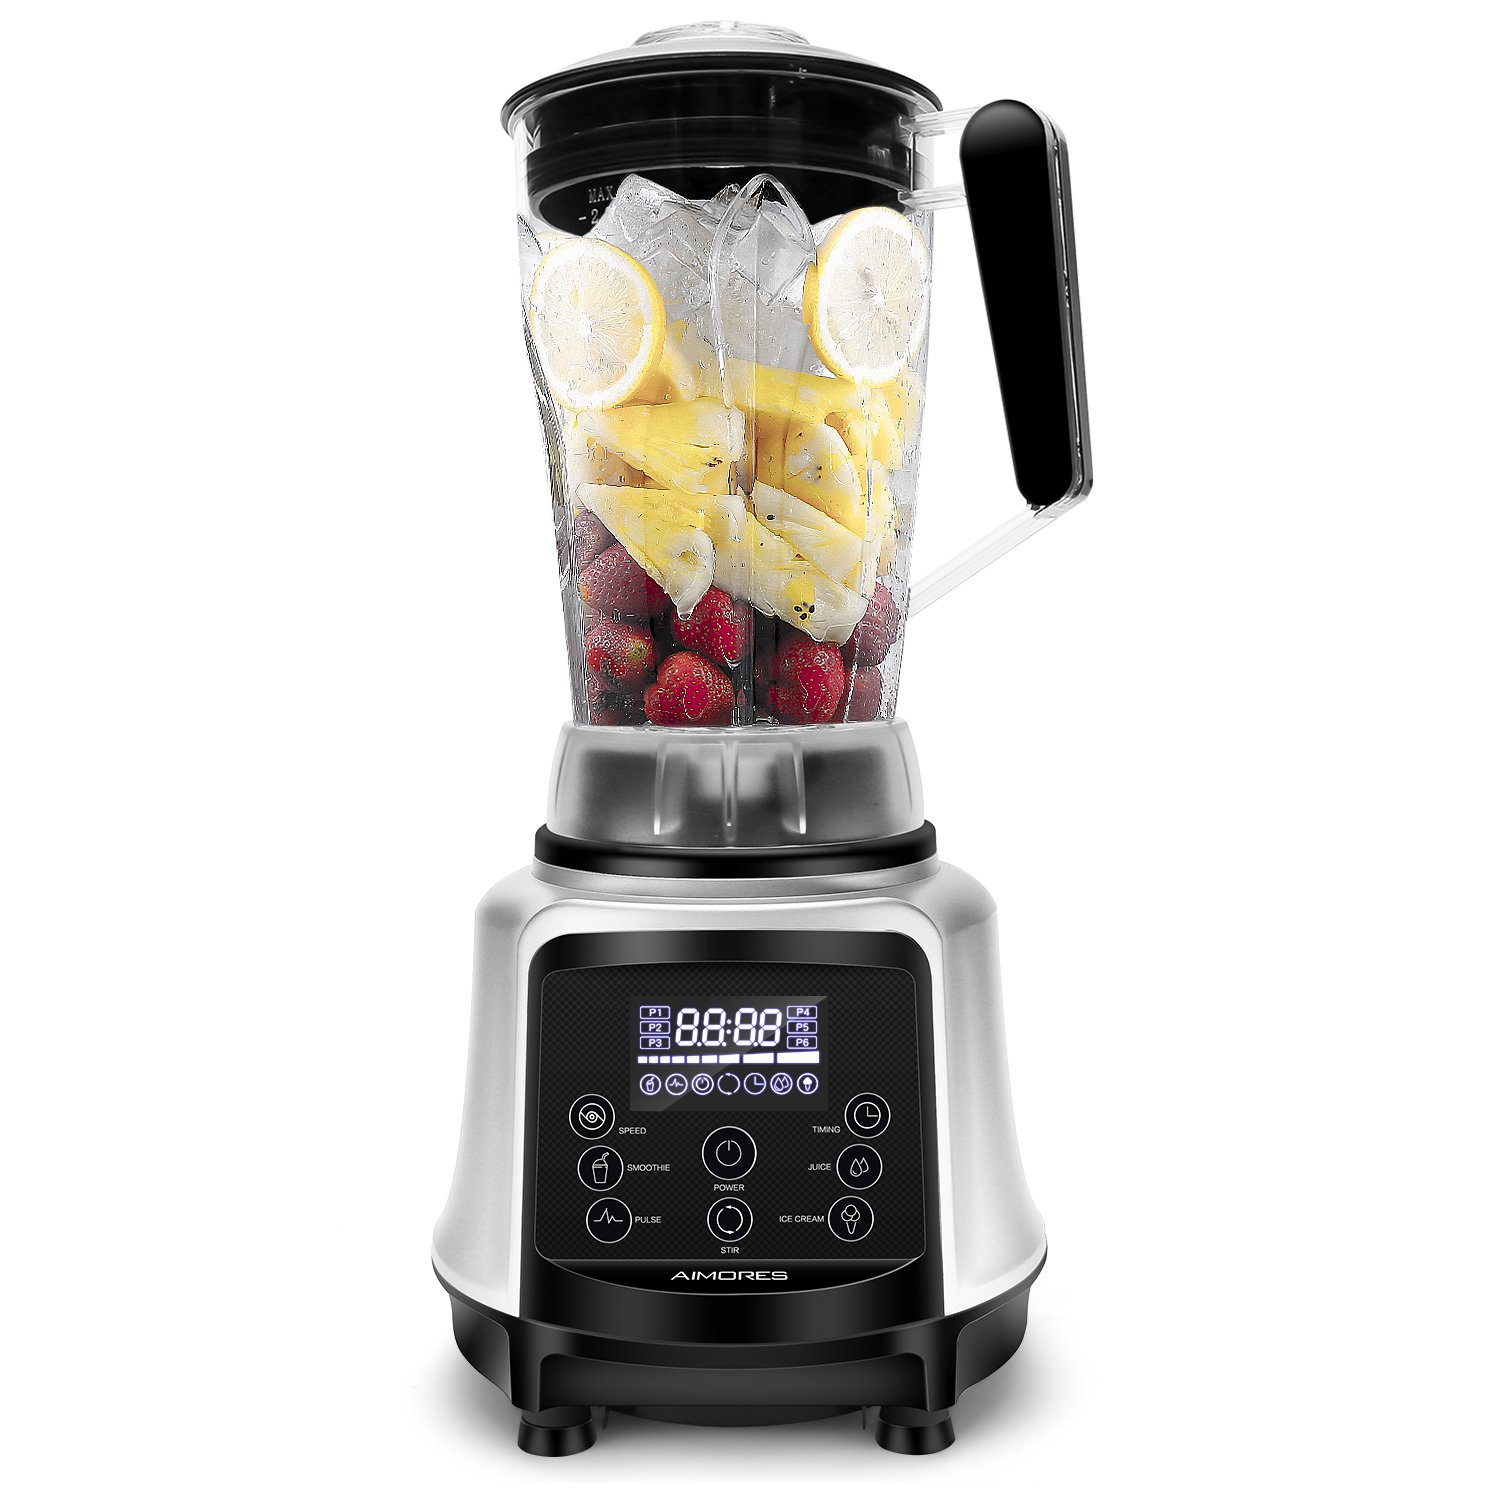 Aimores Commercial Blender for Shakes and Smoothies, Food Processor, 3-in-1 75oz High Speed Programmed Juice Blender, Smoothie Maker for Ice, 32,000RPM, with Tamper & Recipe, ETL/FDA (Black)  Food Processor  ETL/FDA (Black) ISUN AS-UP998